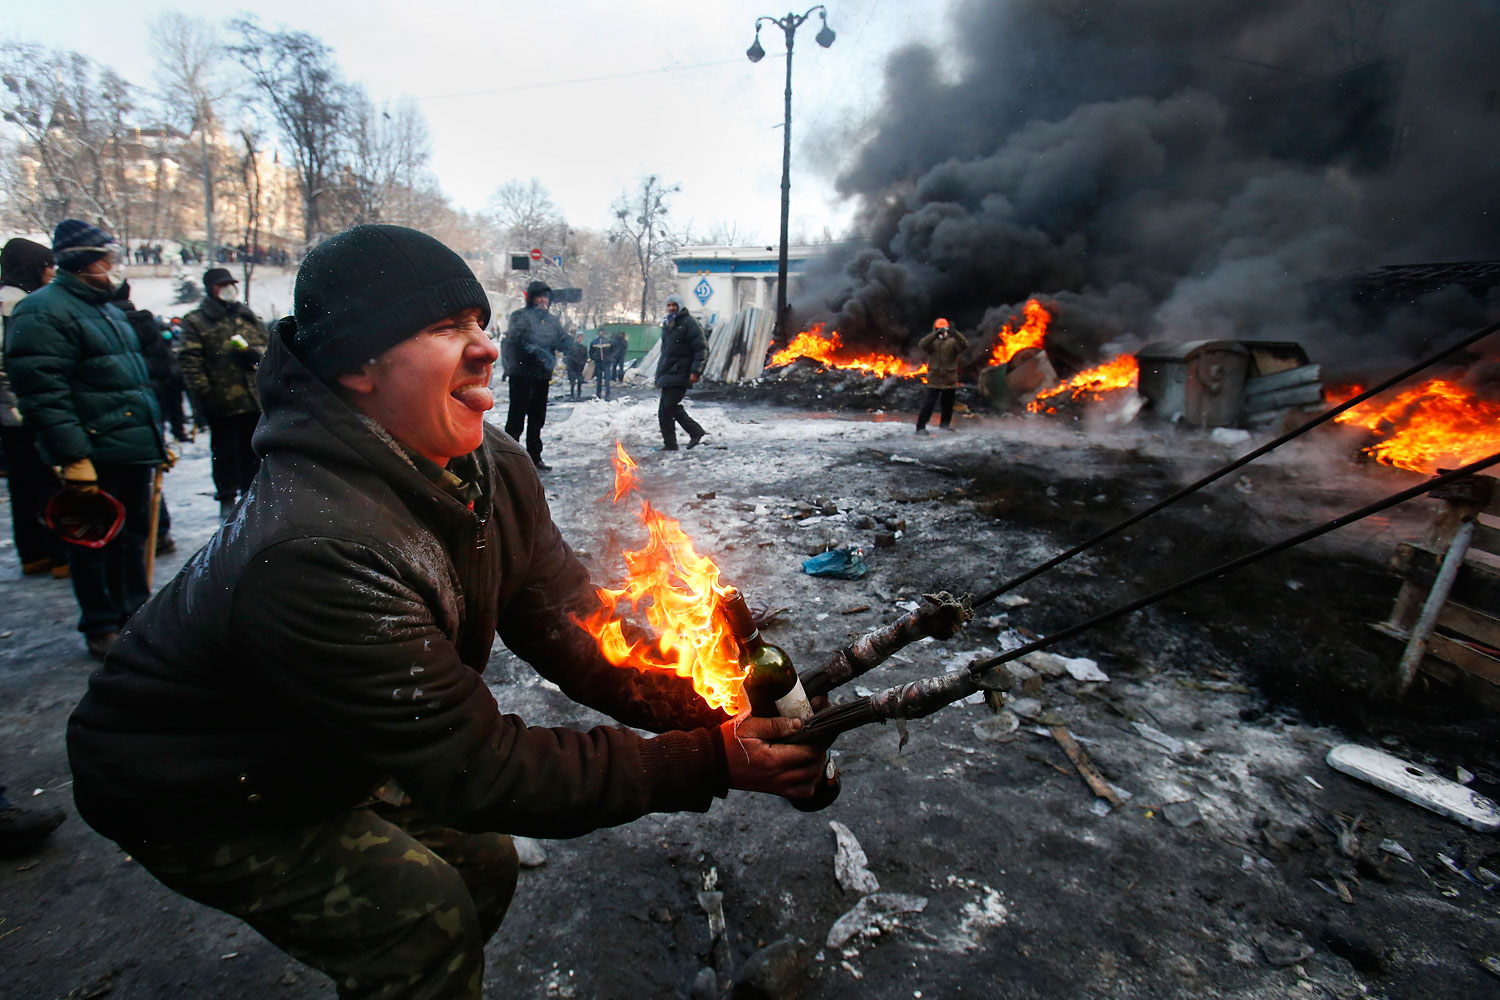 Protesters use a large slingshot to hurl a Molotov cocktail at police in central Kiev, Jan. 23, 2014.